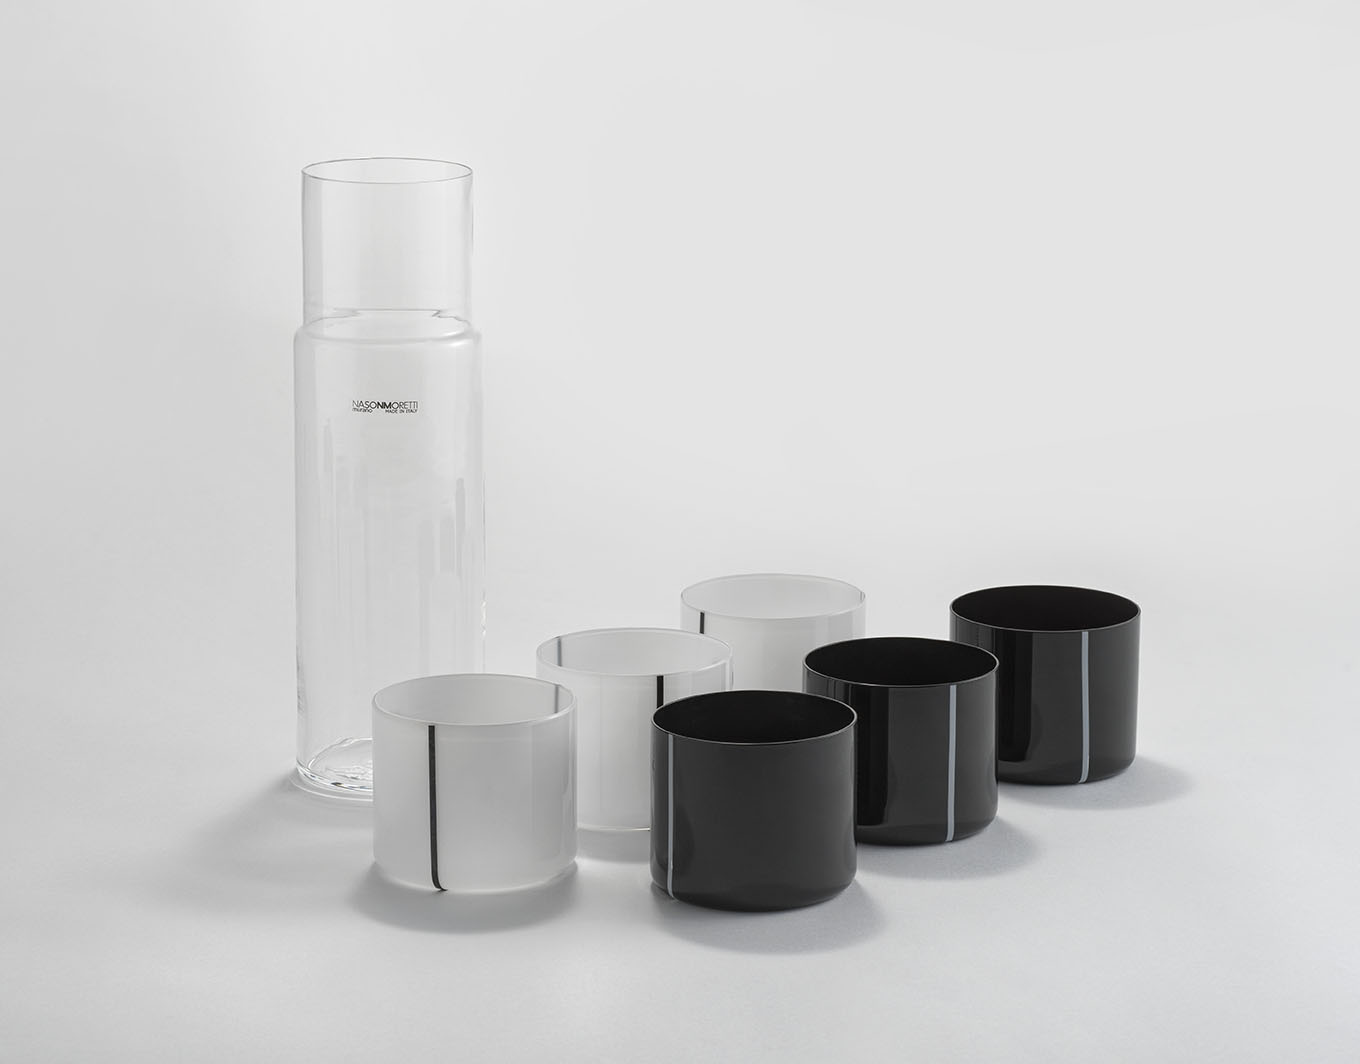 Caraffa 1L con set di bicchieri The Studio